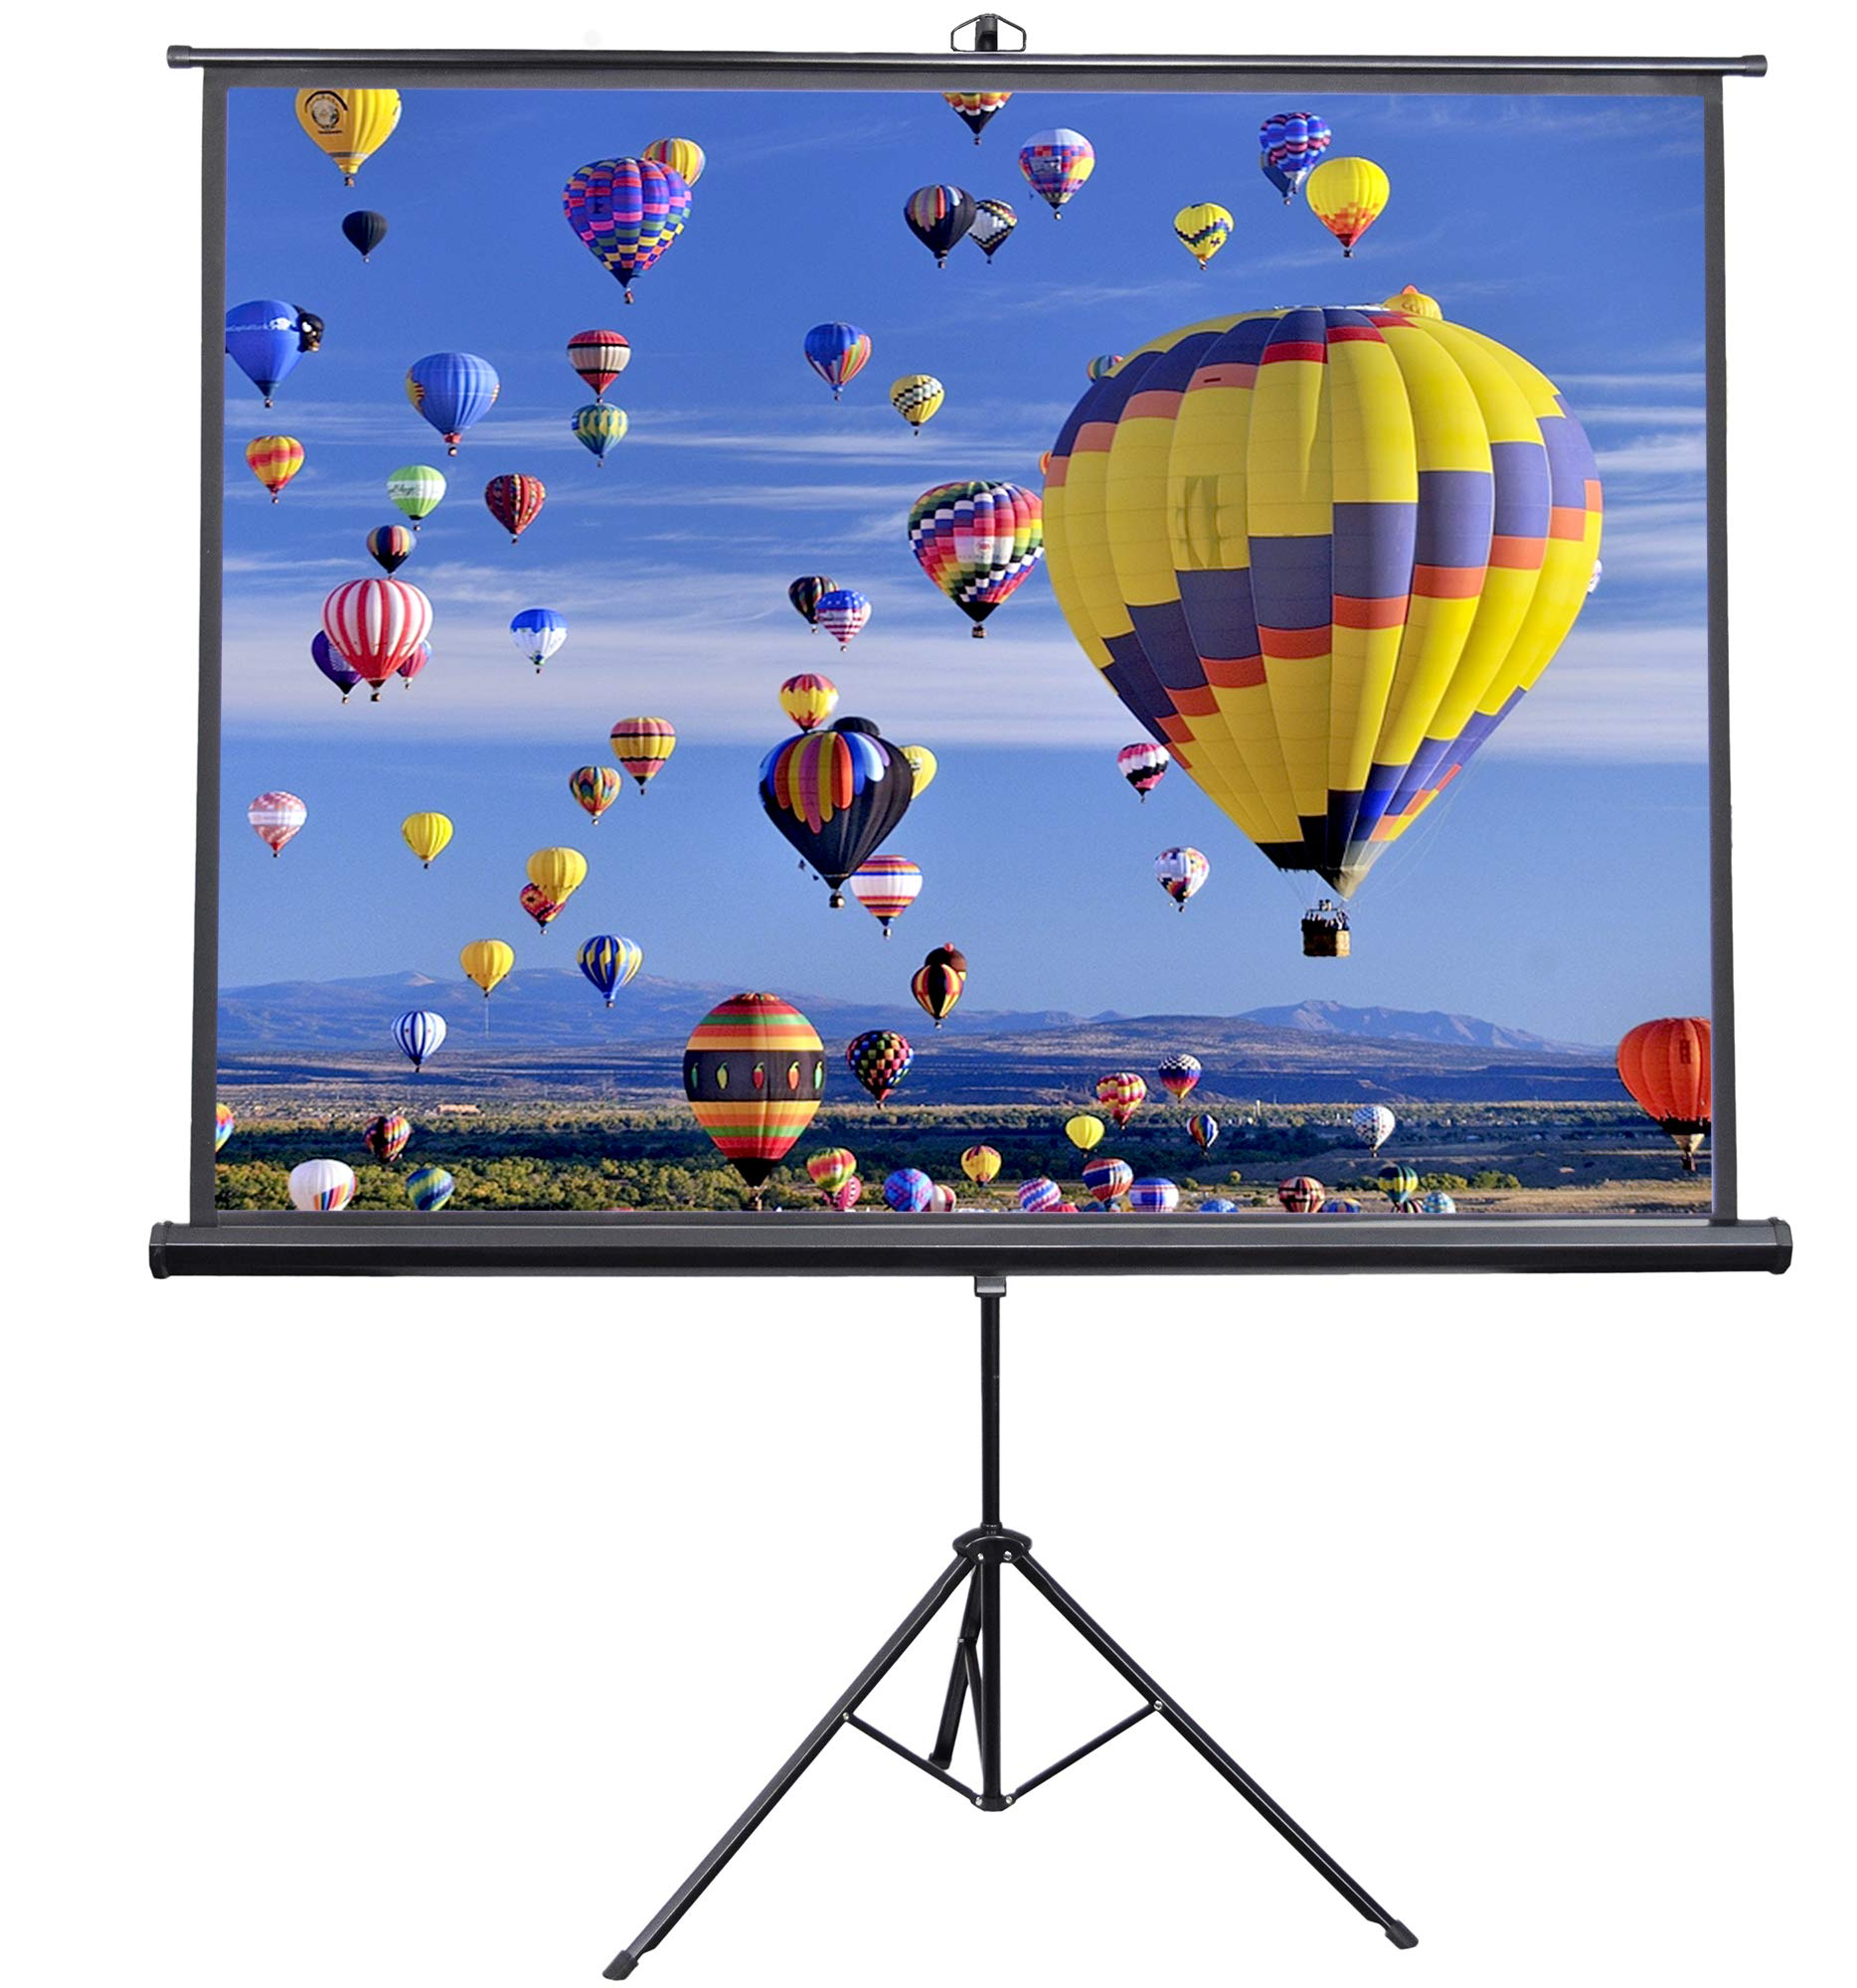 VIVO 84'' Portable Indoor Outdoor Projector Screen, 84 Inch Diagonal Projection HD 4:3 Projection Pull Up Foldable Stand Tripod (PS-T-084)